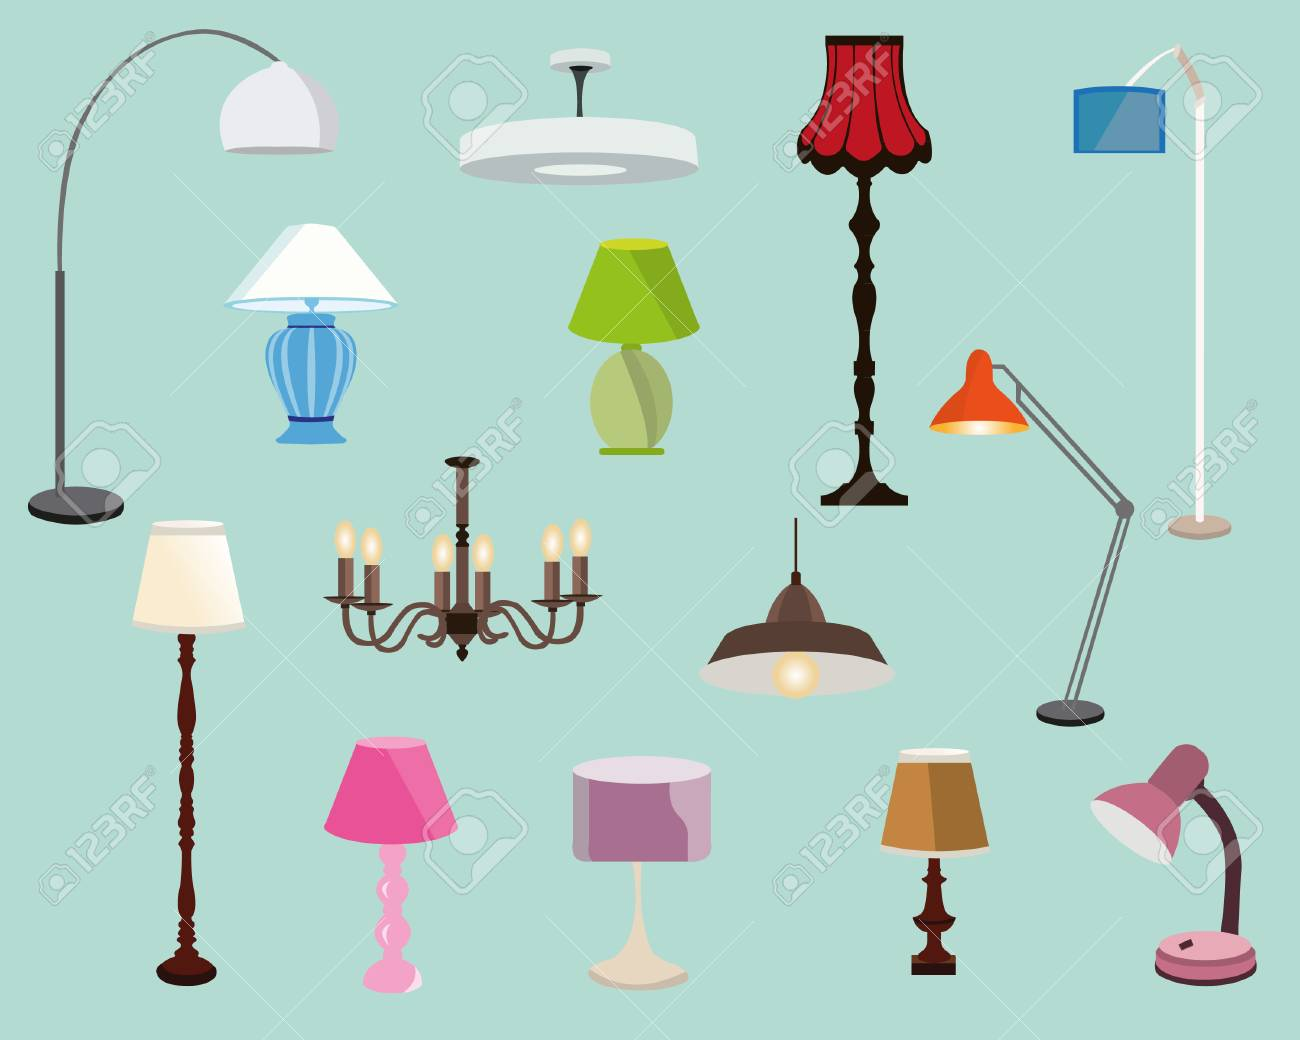 Colorful lamps set floor lamps table lamps and chandeliersflat colorful lamps set floor lamps table lamps and chandeliersflat style vector illustration mozeypictures